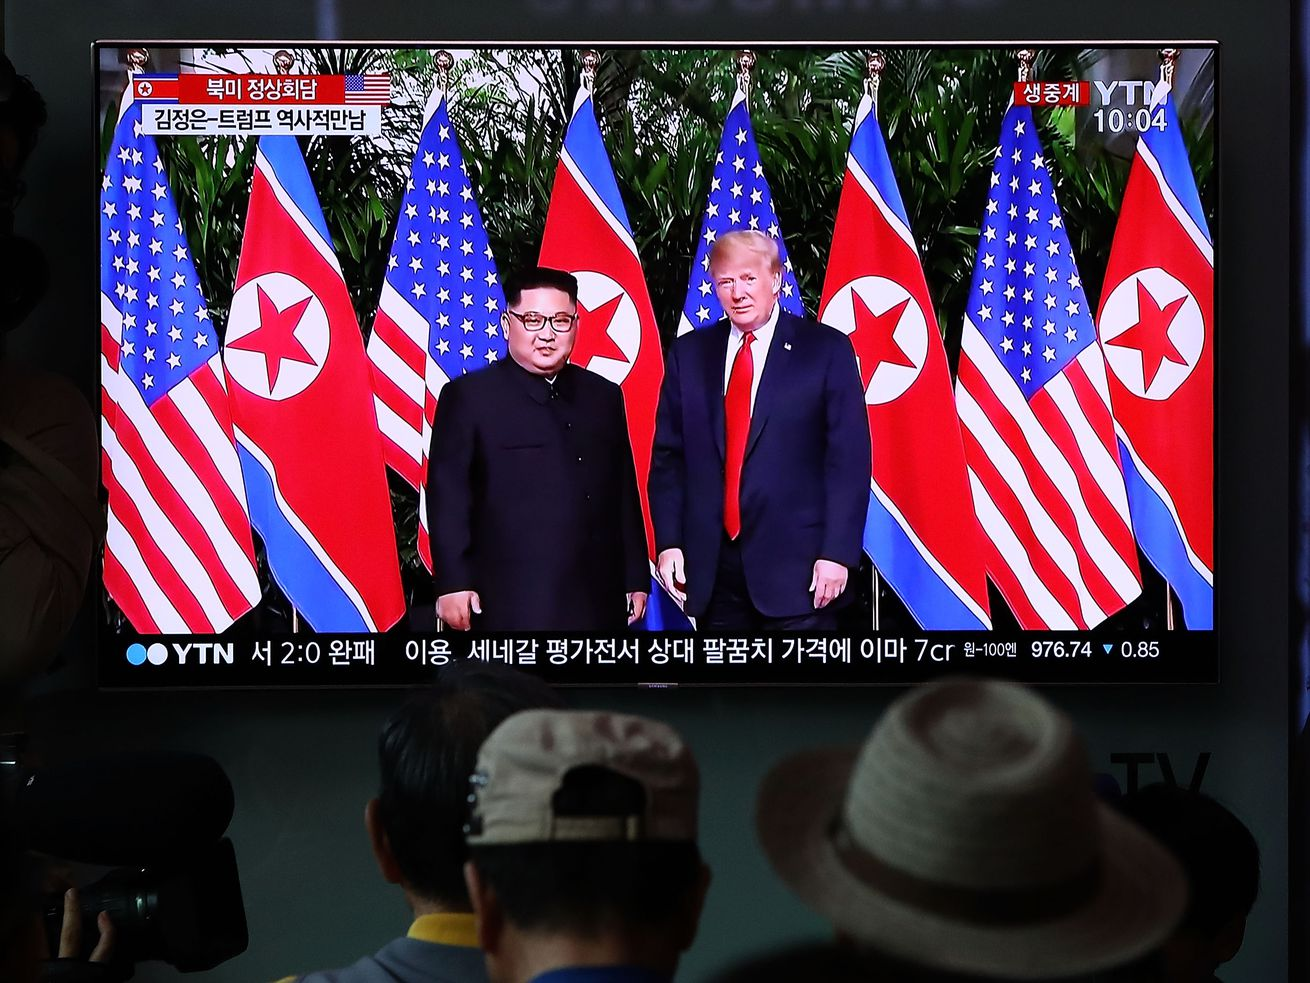 South Koreans watch on screen as US President Donald Trump and North Korean leader Kim Jong Un meet in Singapore in June 2018.